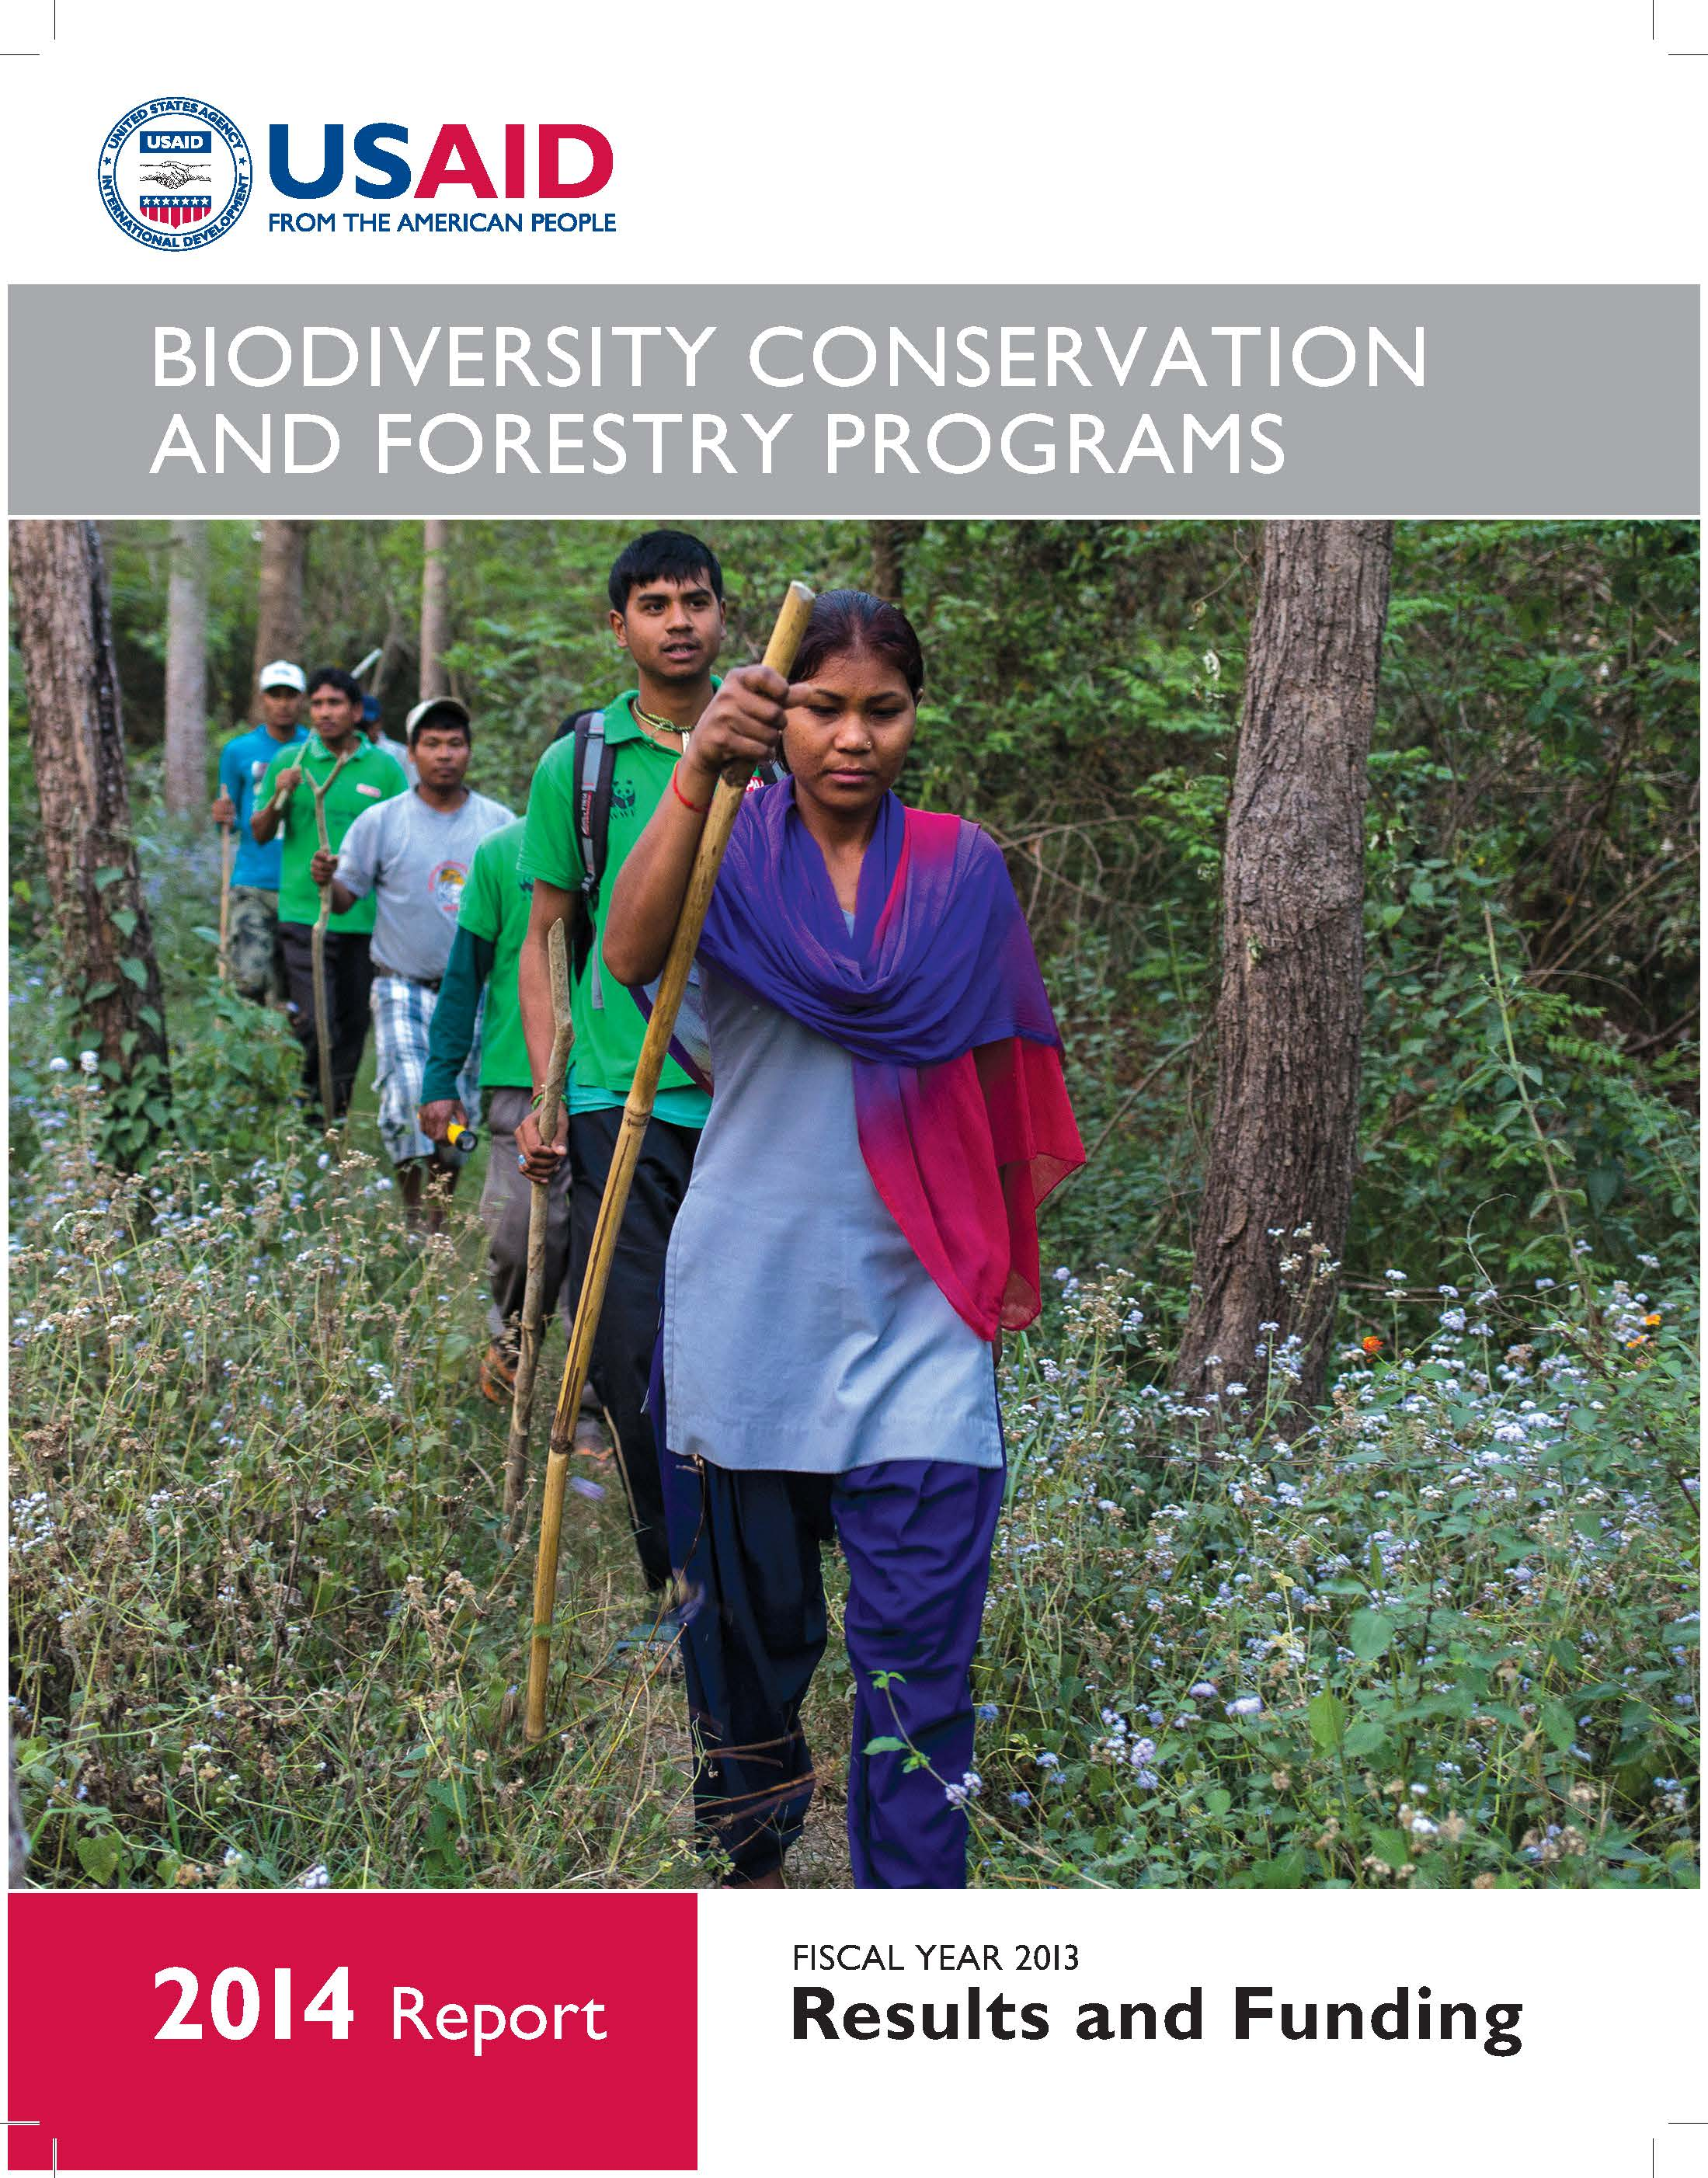 USAID Biodiversity Conservation and Forestry Programs, 2014 Report